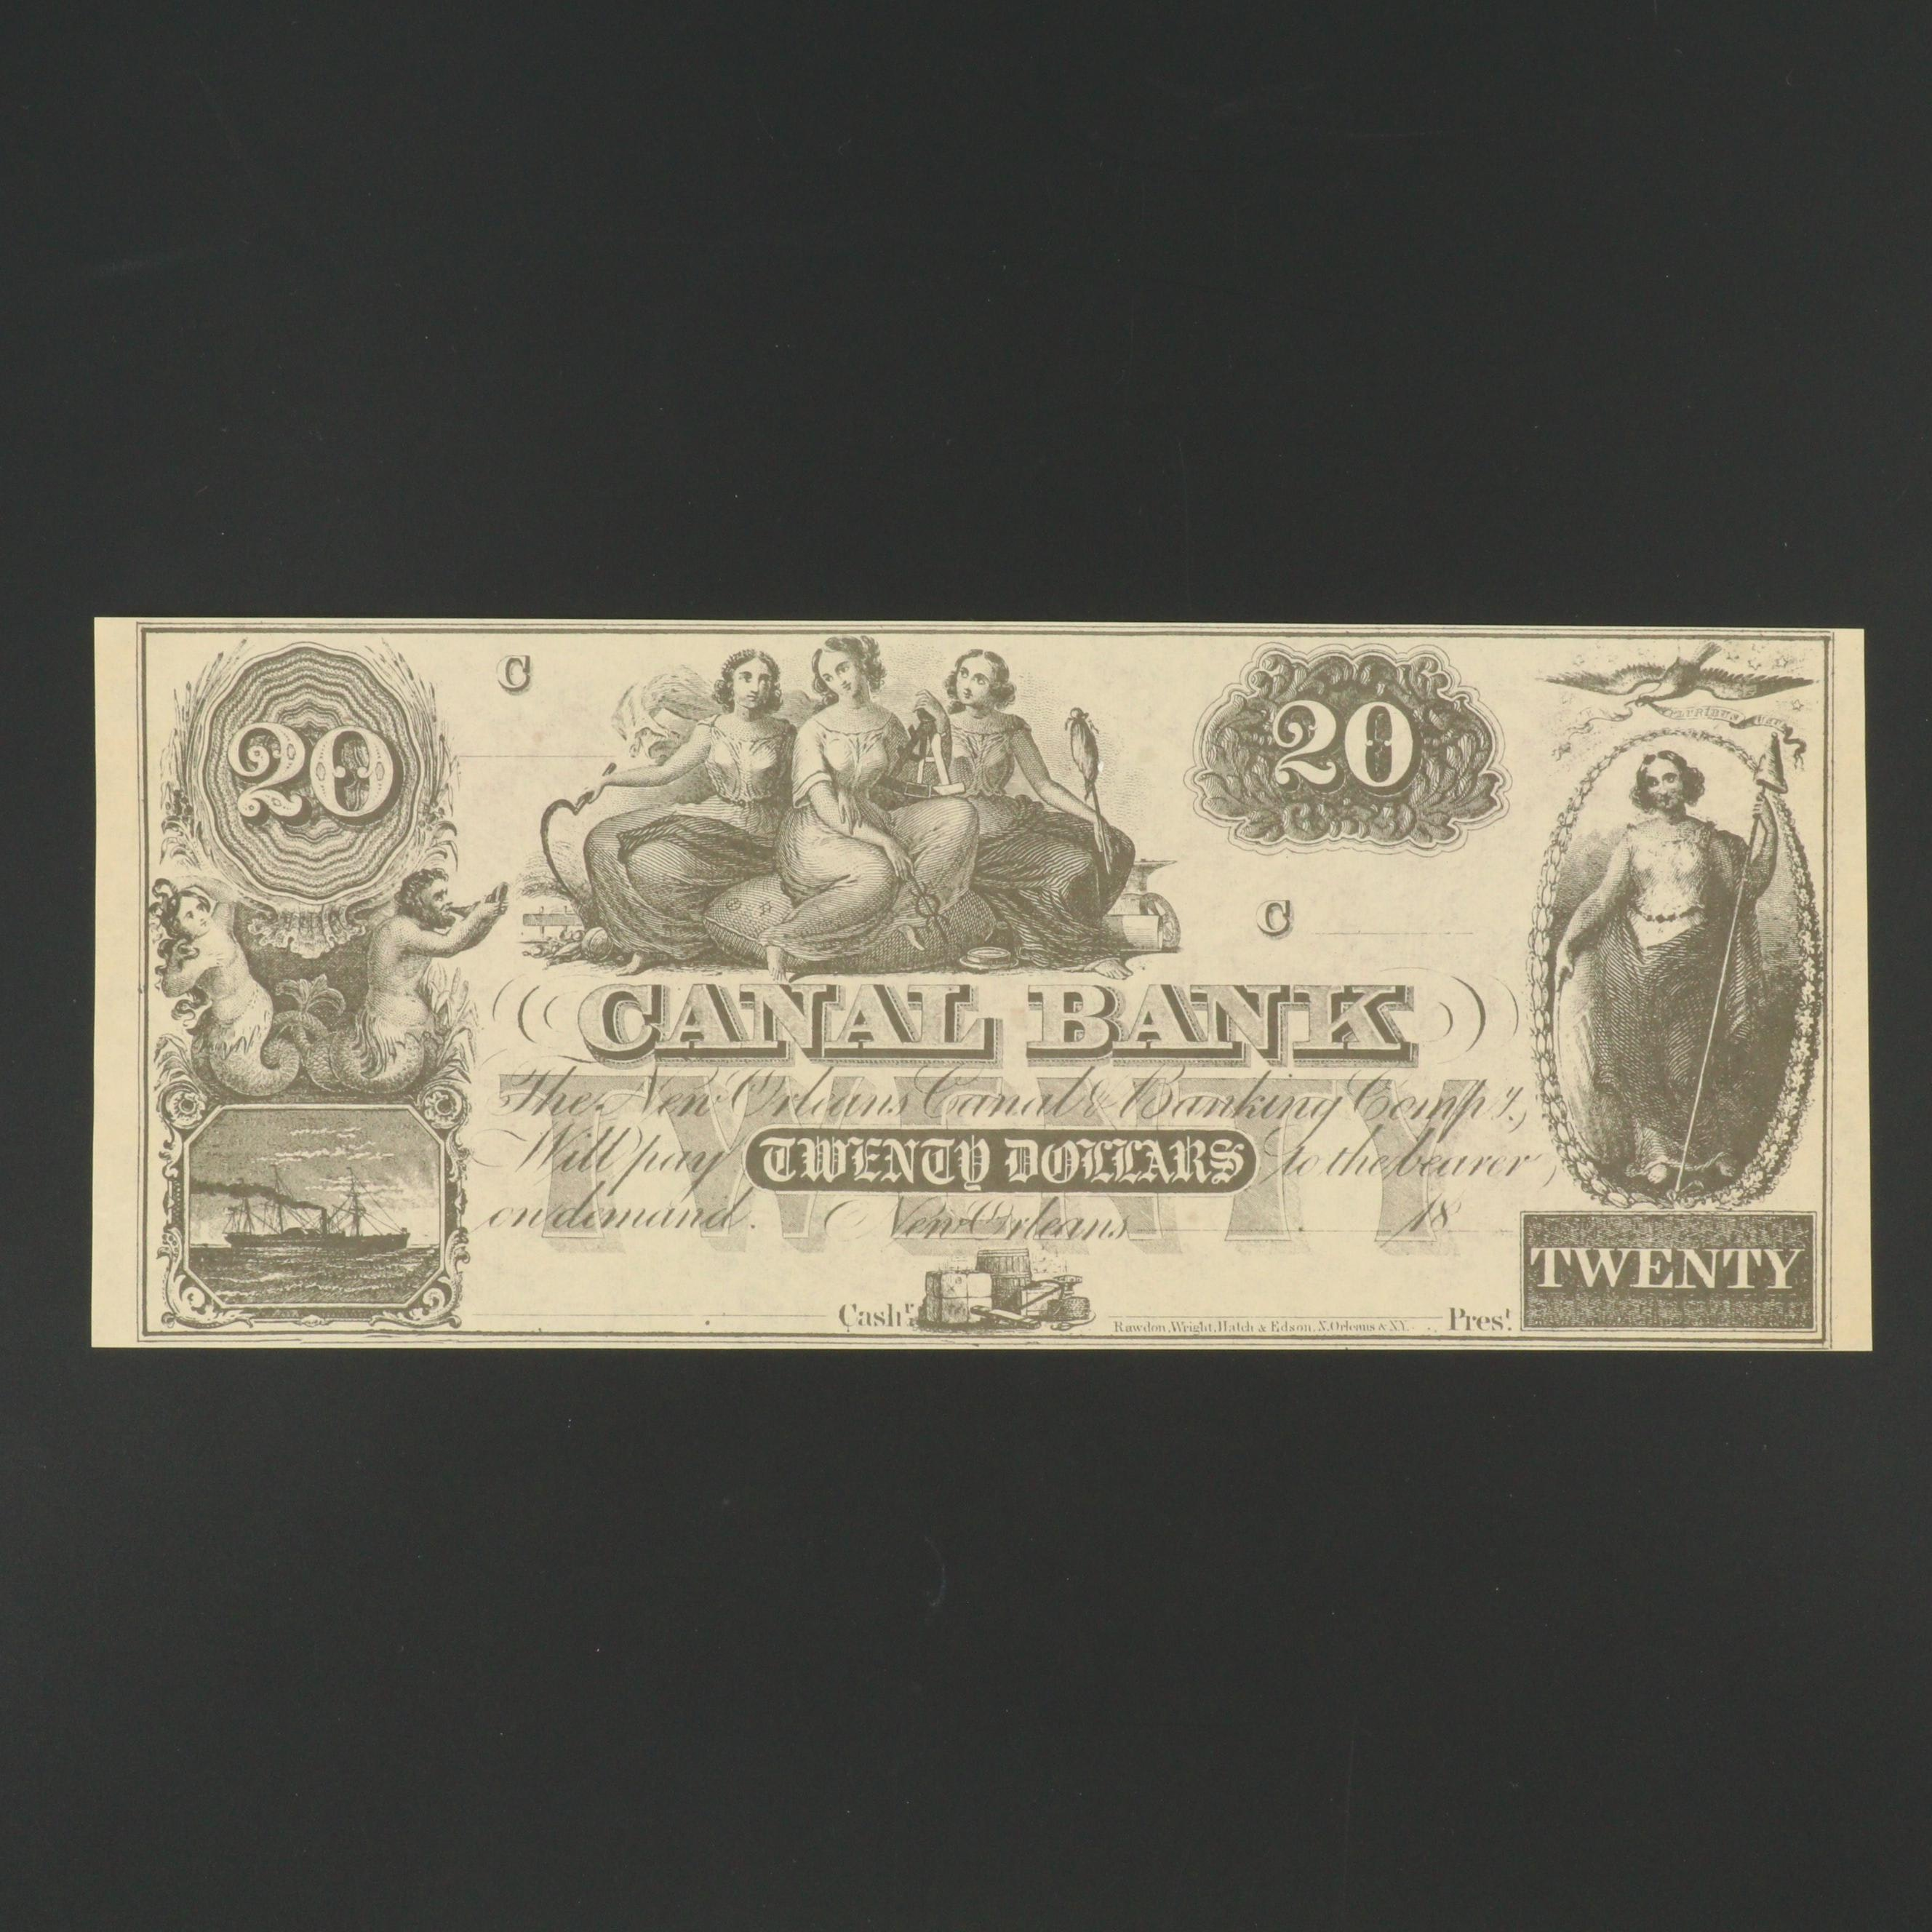 Canal Bank New Orleans $20 Obsolete Banknote From the 1850s